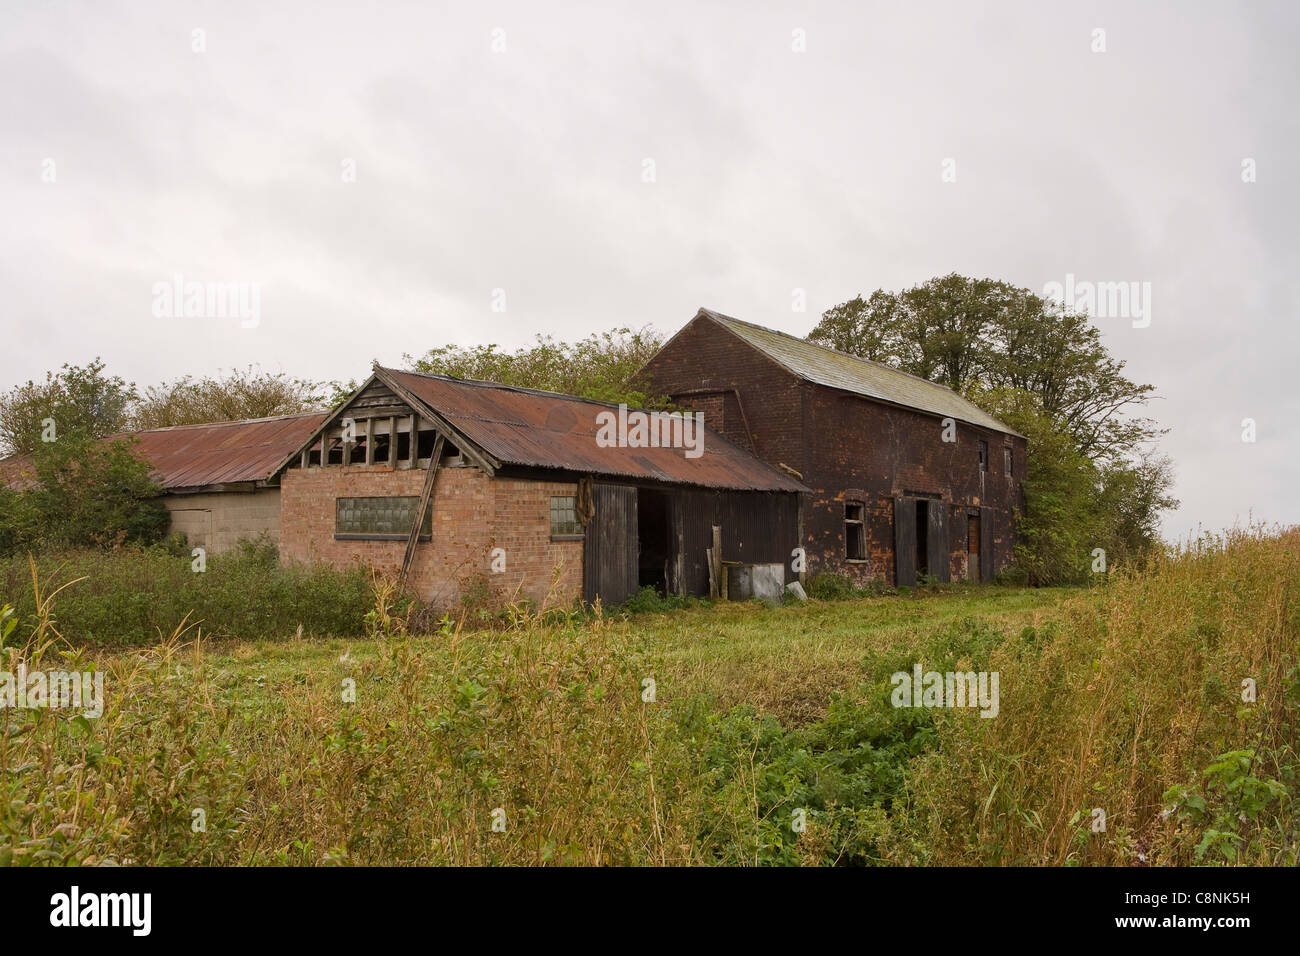 Redundant farm buildings left behind by the progress in farming methods. - Stock Image